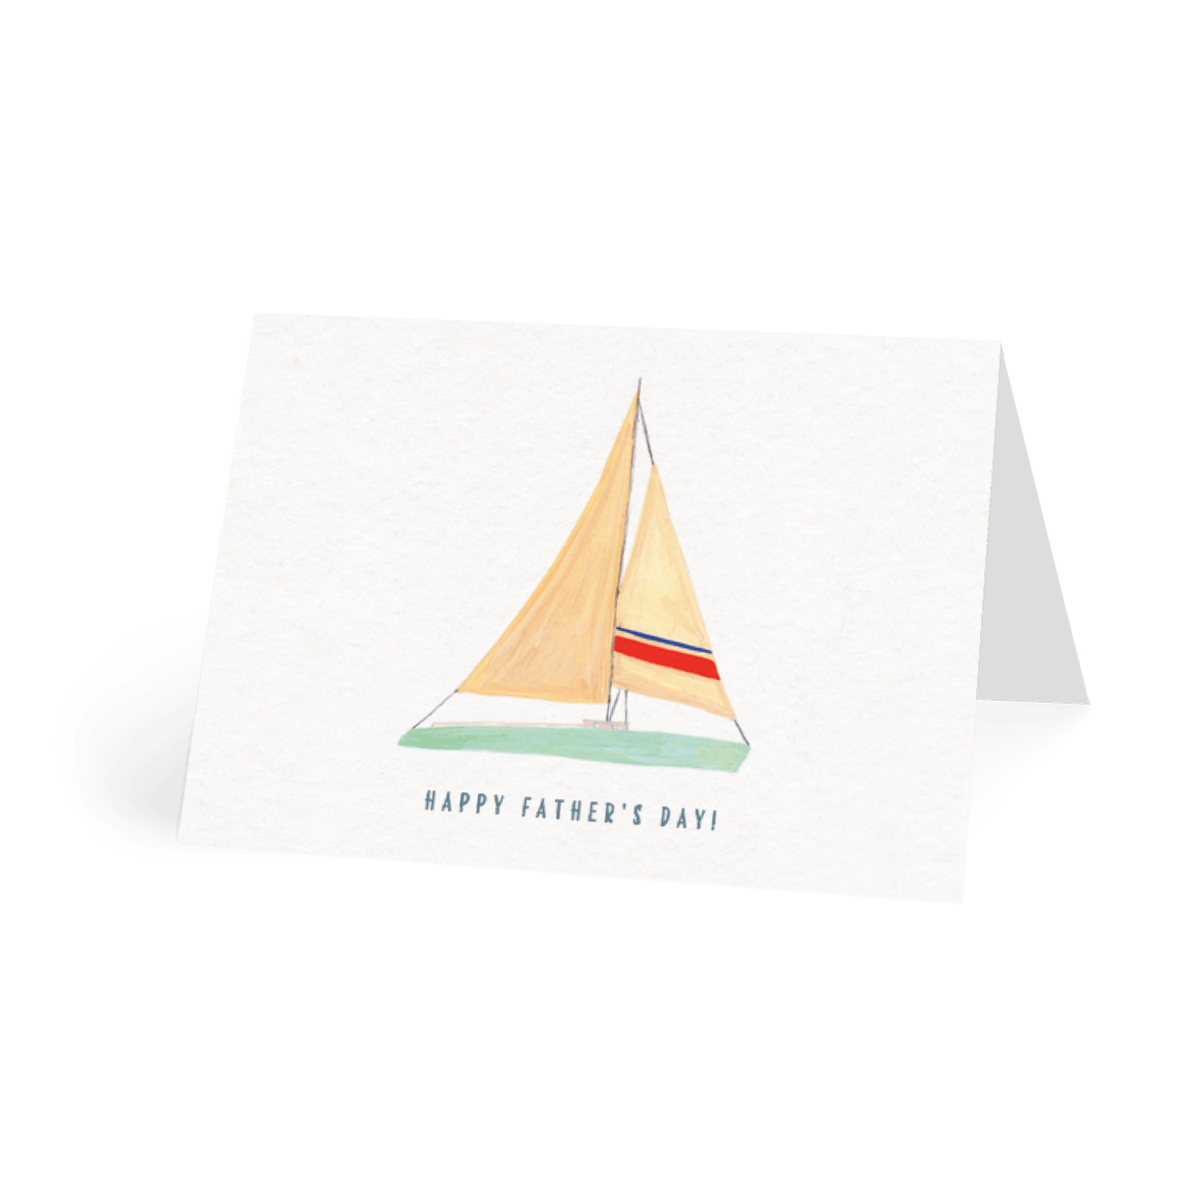 Https%3a%2f%2fwww.papier.com%2fproduct image%2f7135%2f14%2fsweet sailing 1752 front 1581452135.png?ixlib=rb 1.1